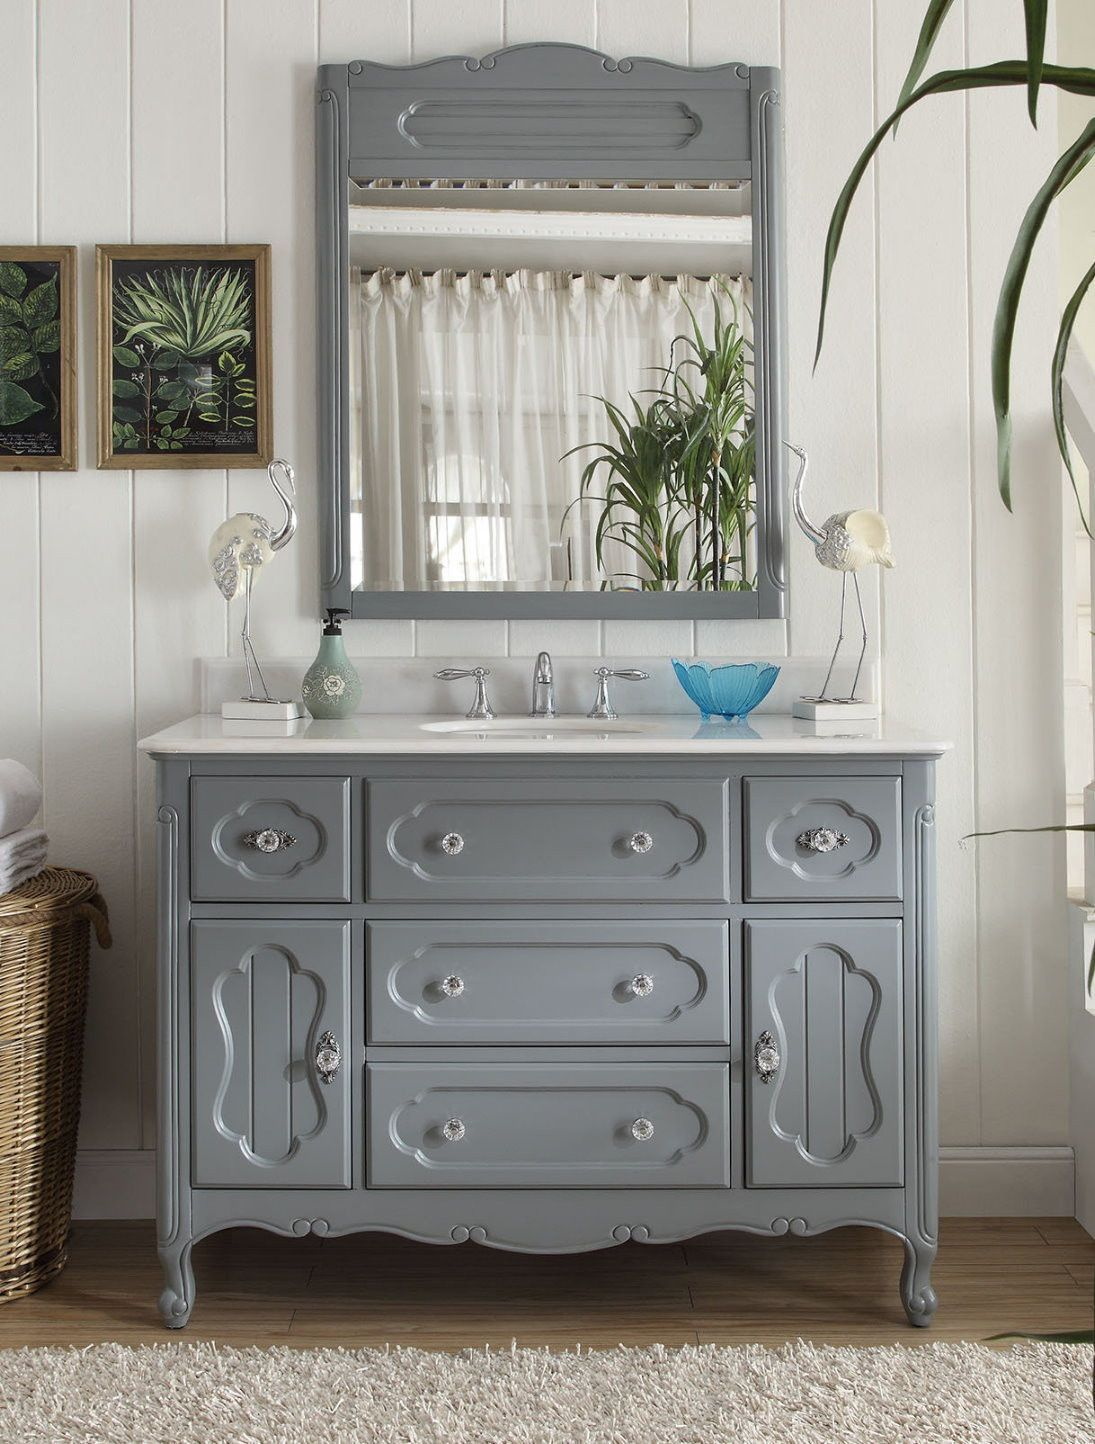 48 Benton Collection Victorian Cottage Style Knoxville Bathroom Vanity With Mirror Gd 1522ck Mir Chic Bathrooms Bathroom Sink Vanity Vanity Sink